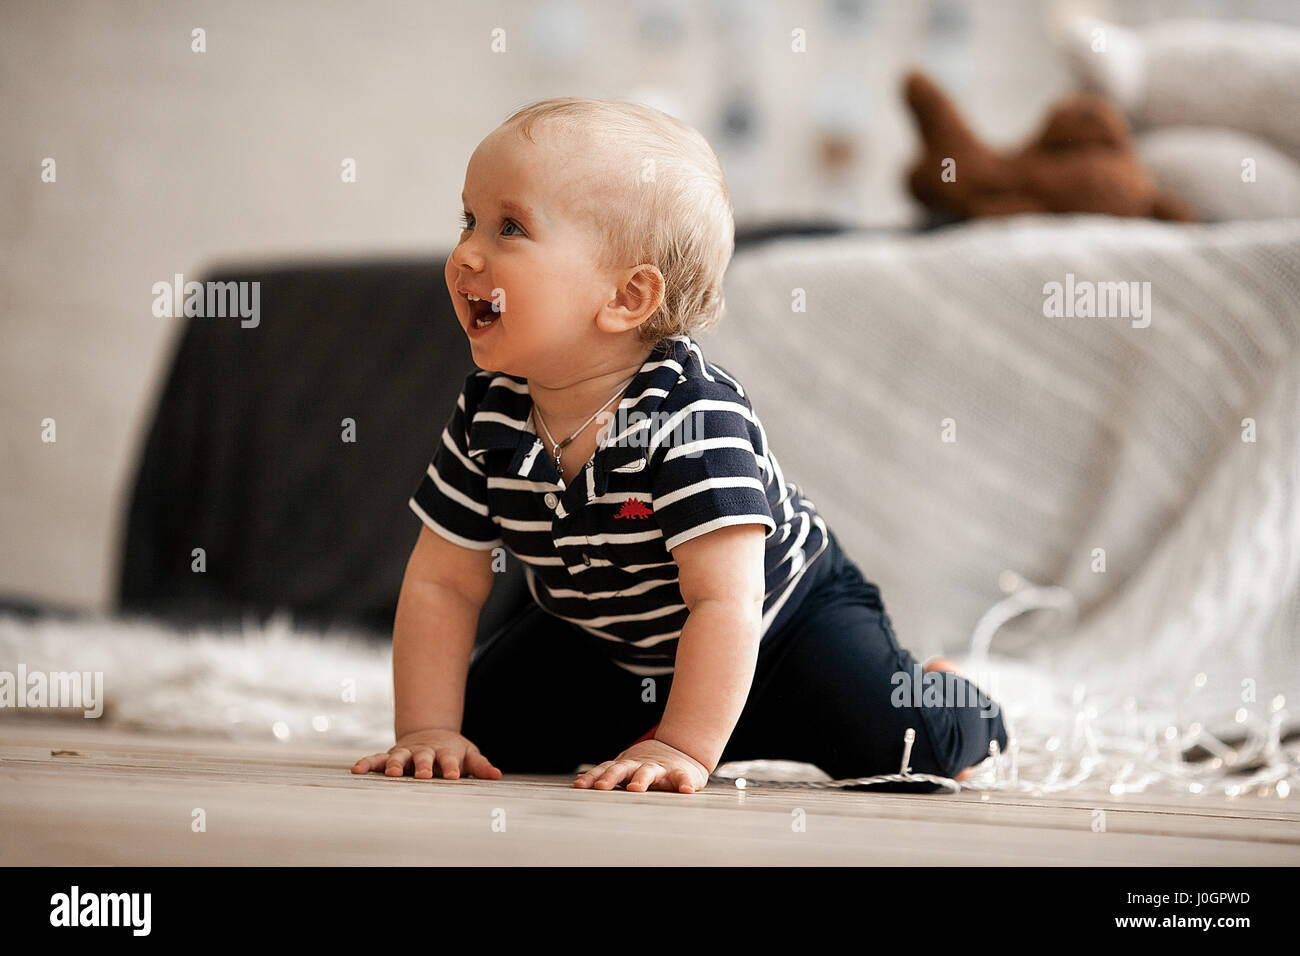 Small baby crawling on floor and laughs merrily. He is very pleased. - Stock Image